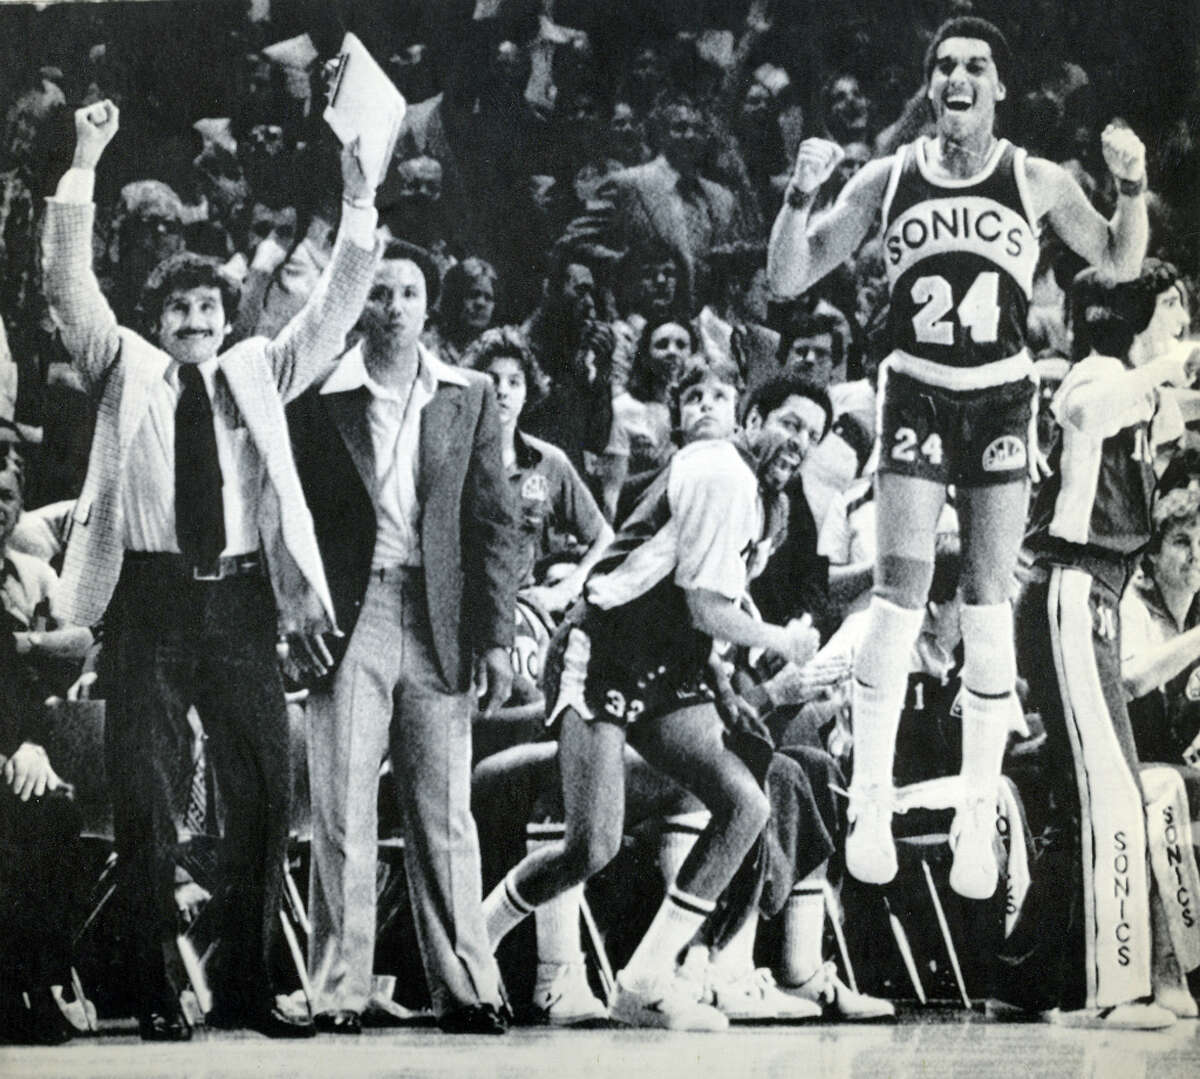 From left to right: SuperSonics assistant coach Les Habegger, head coach Lenny Wilkens, team captain Fred Brown and player Dennis Johnson celebrate as their 1979 championship win over the Washington Bullets nears.